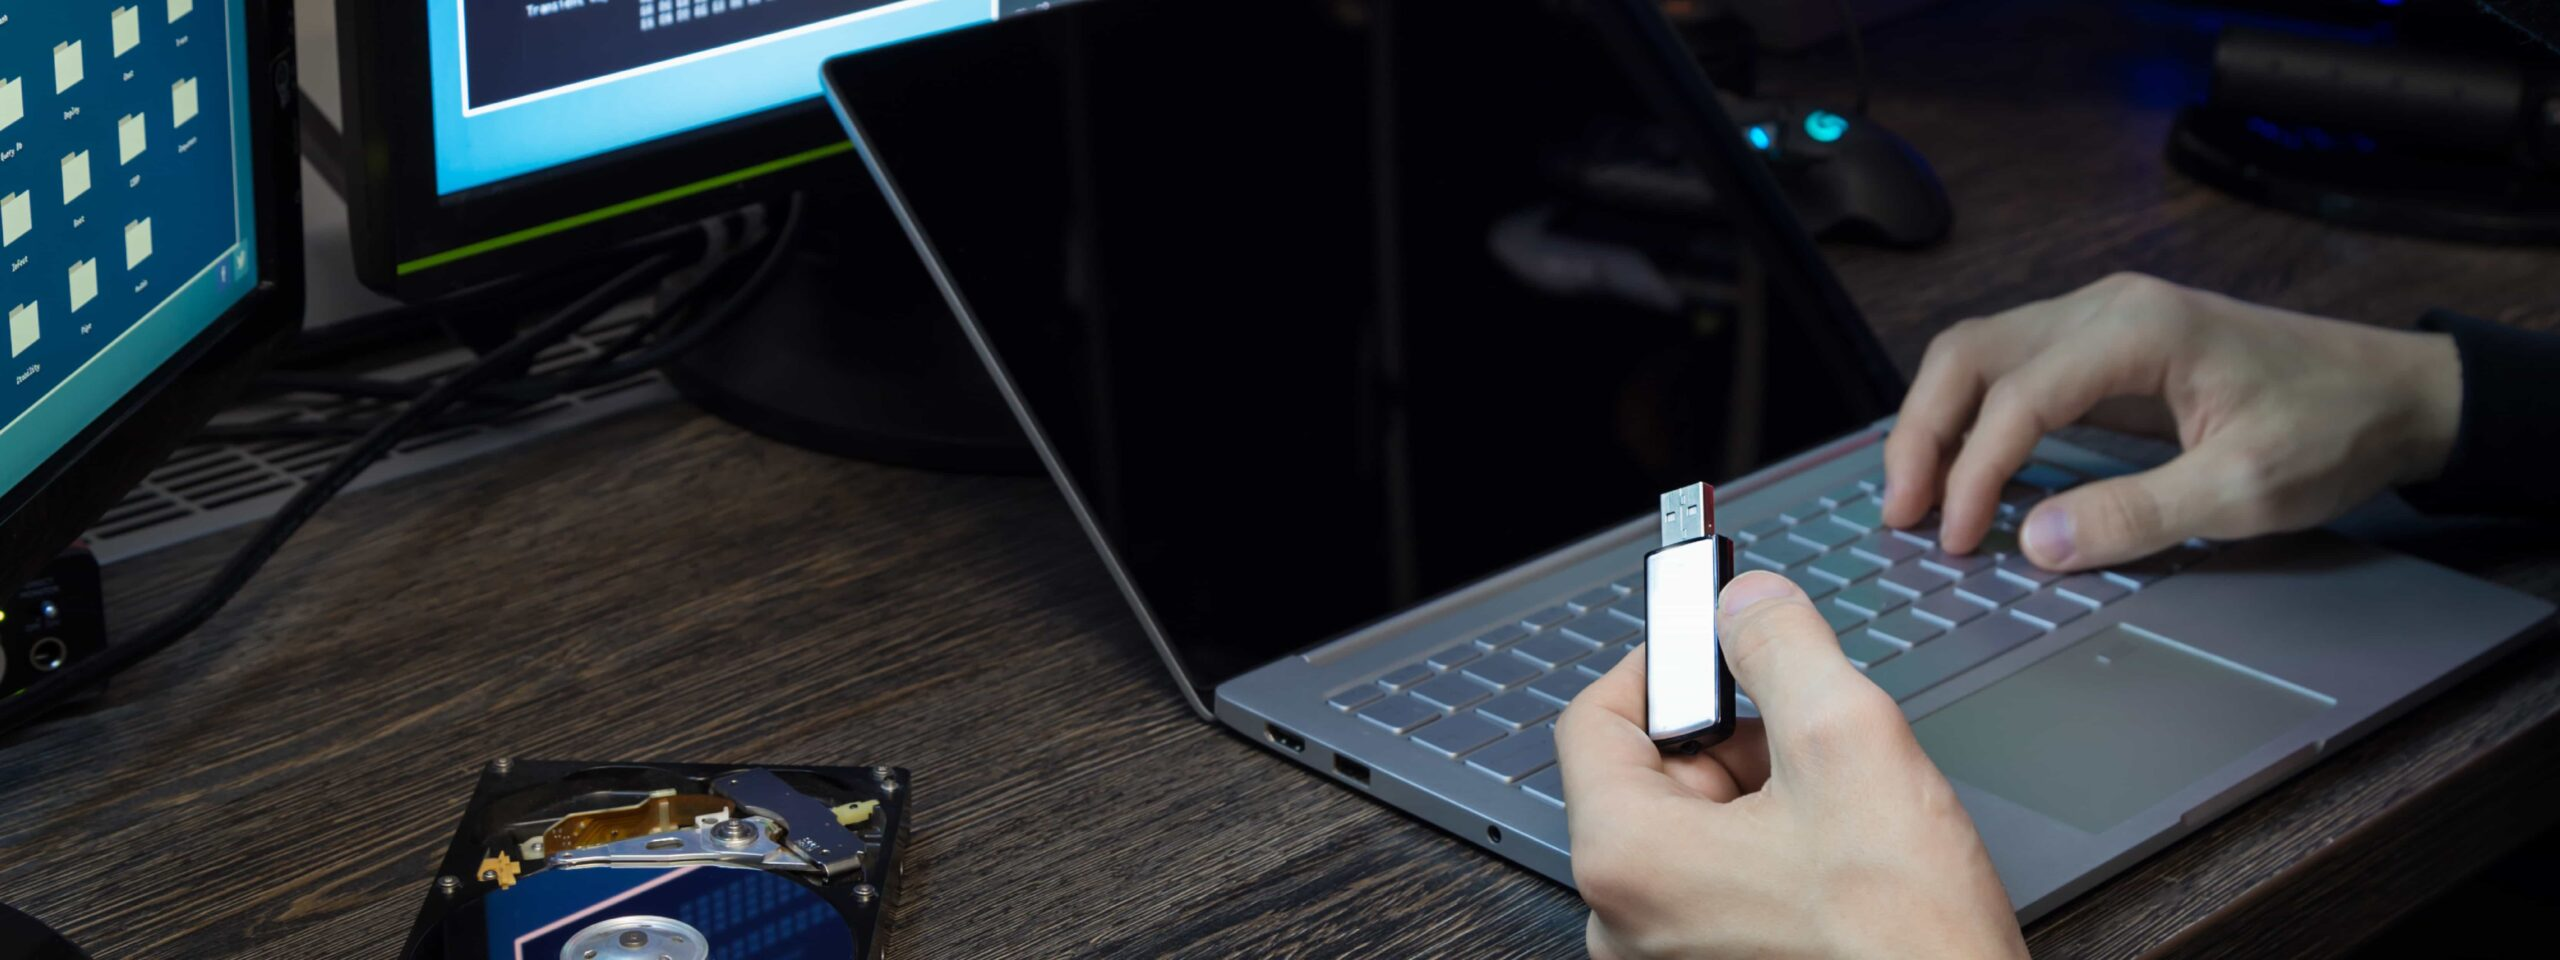 What are the dangers of unknown USB devices? | Computing Australia